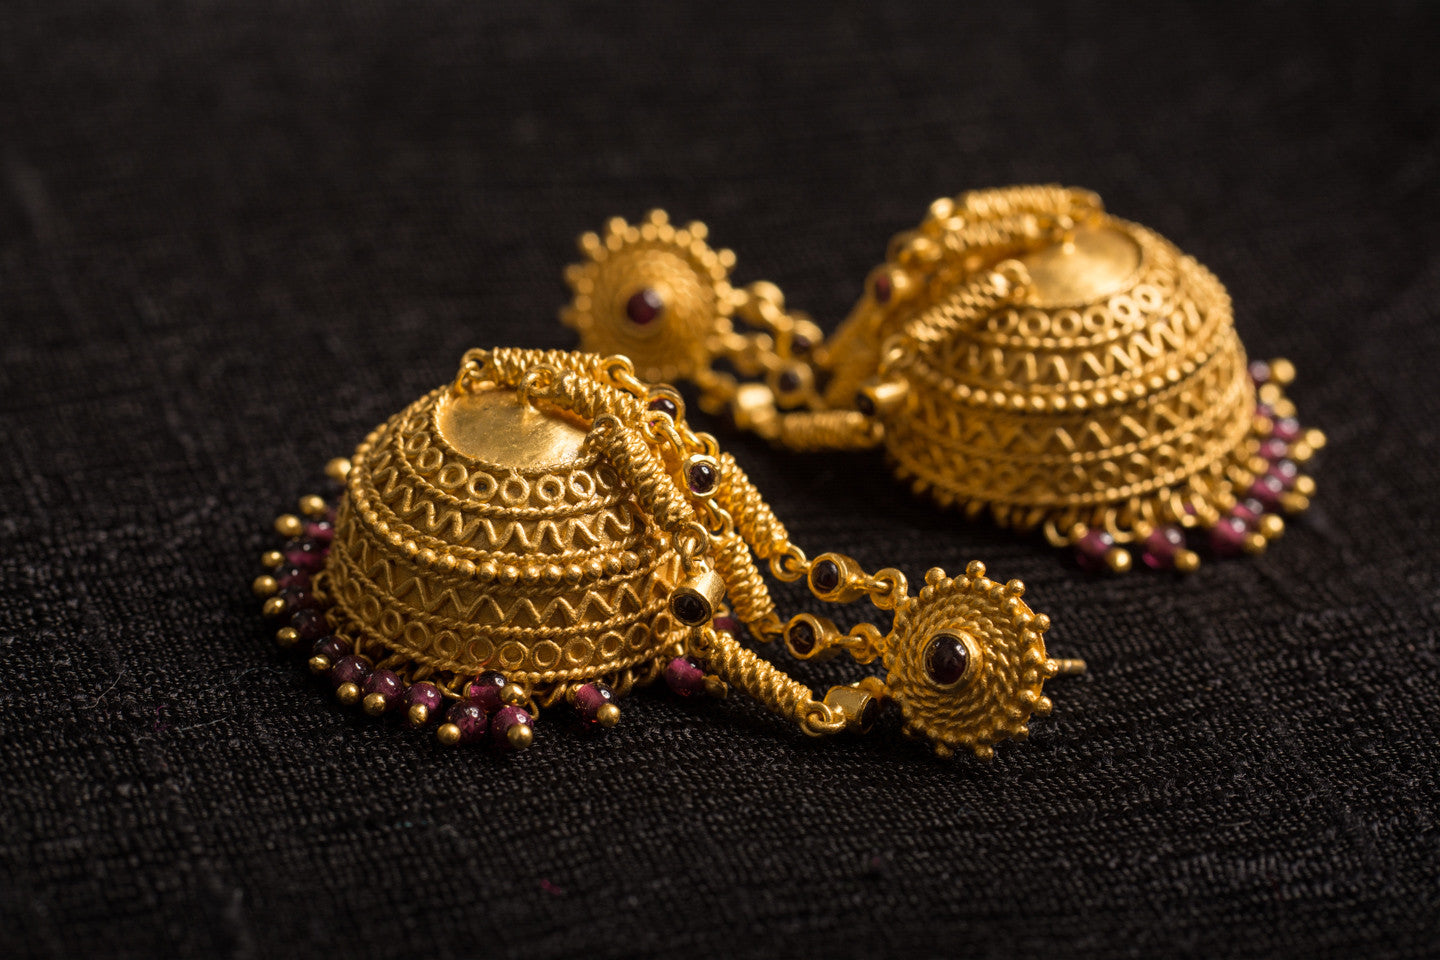 20a437-silver-gold-plated-amrapali-earrings-garnet-jhumka-alternate-view